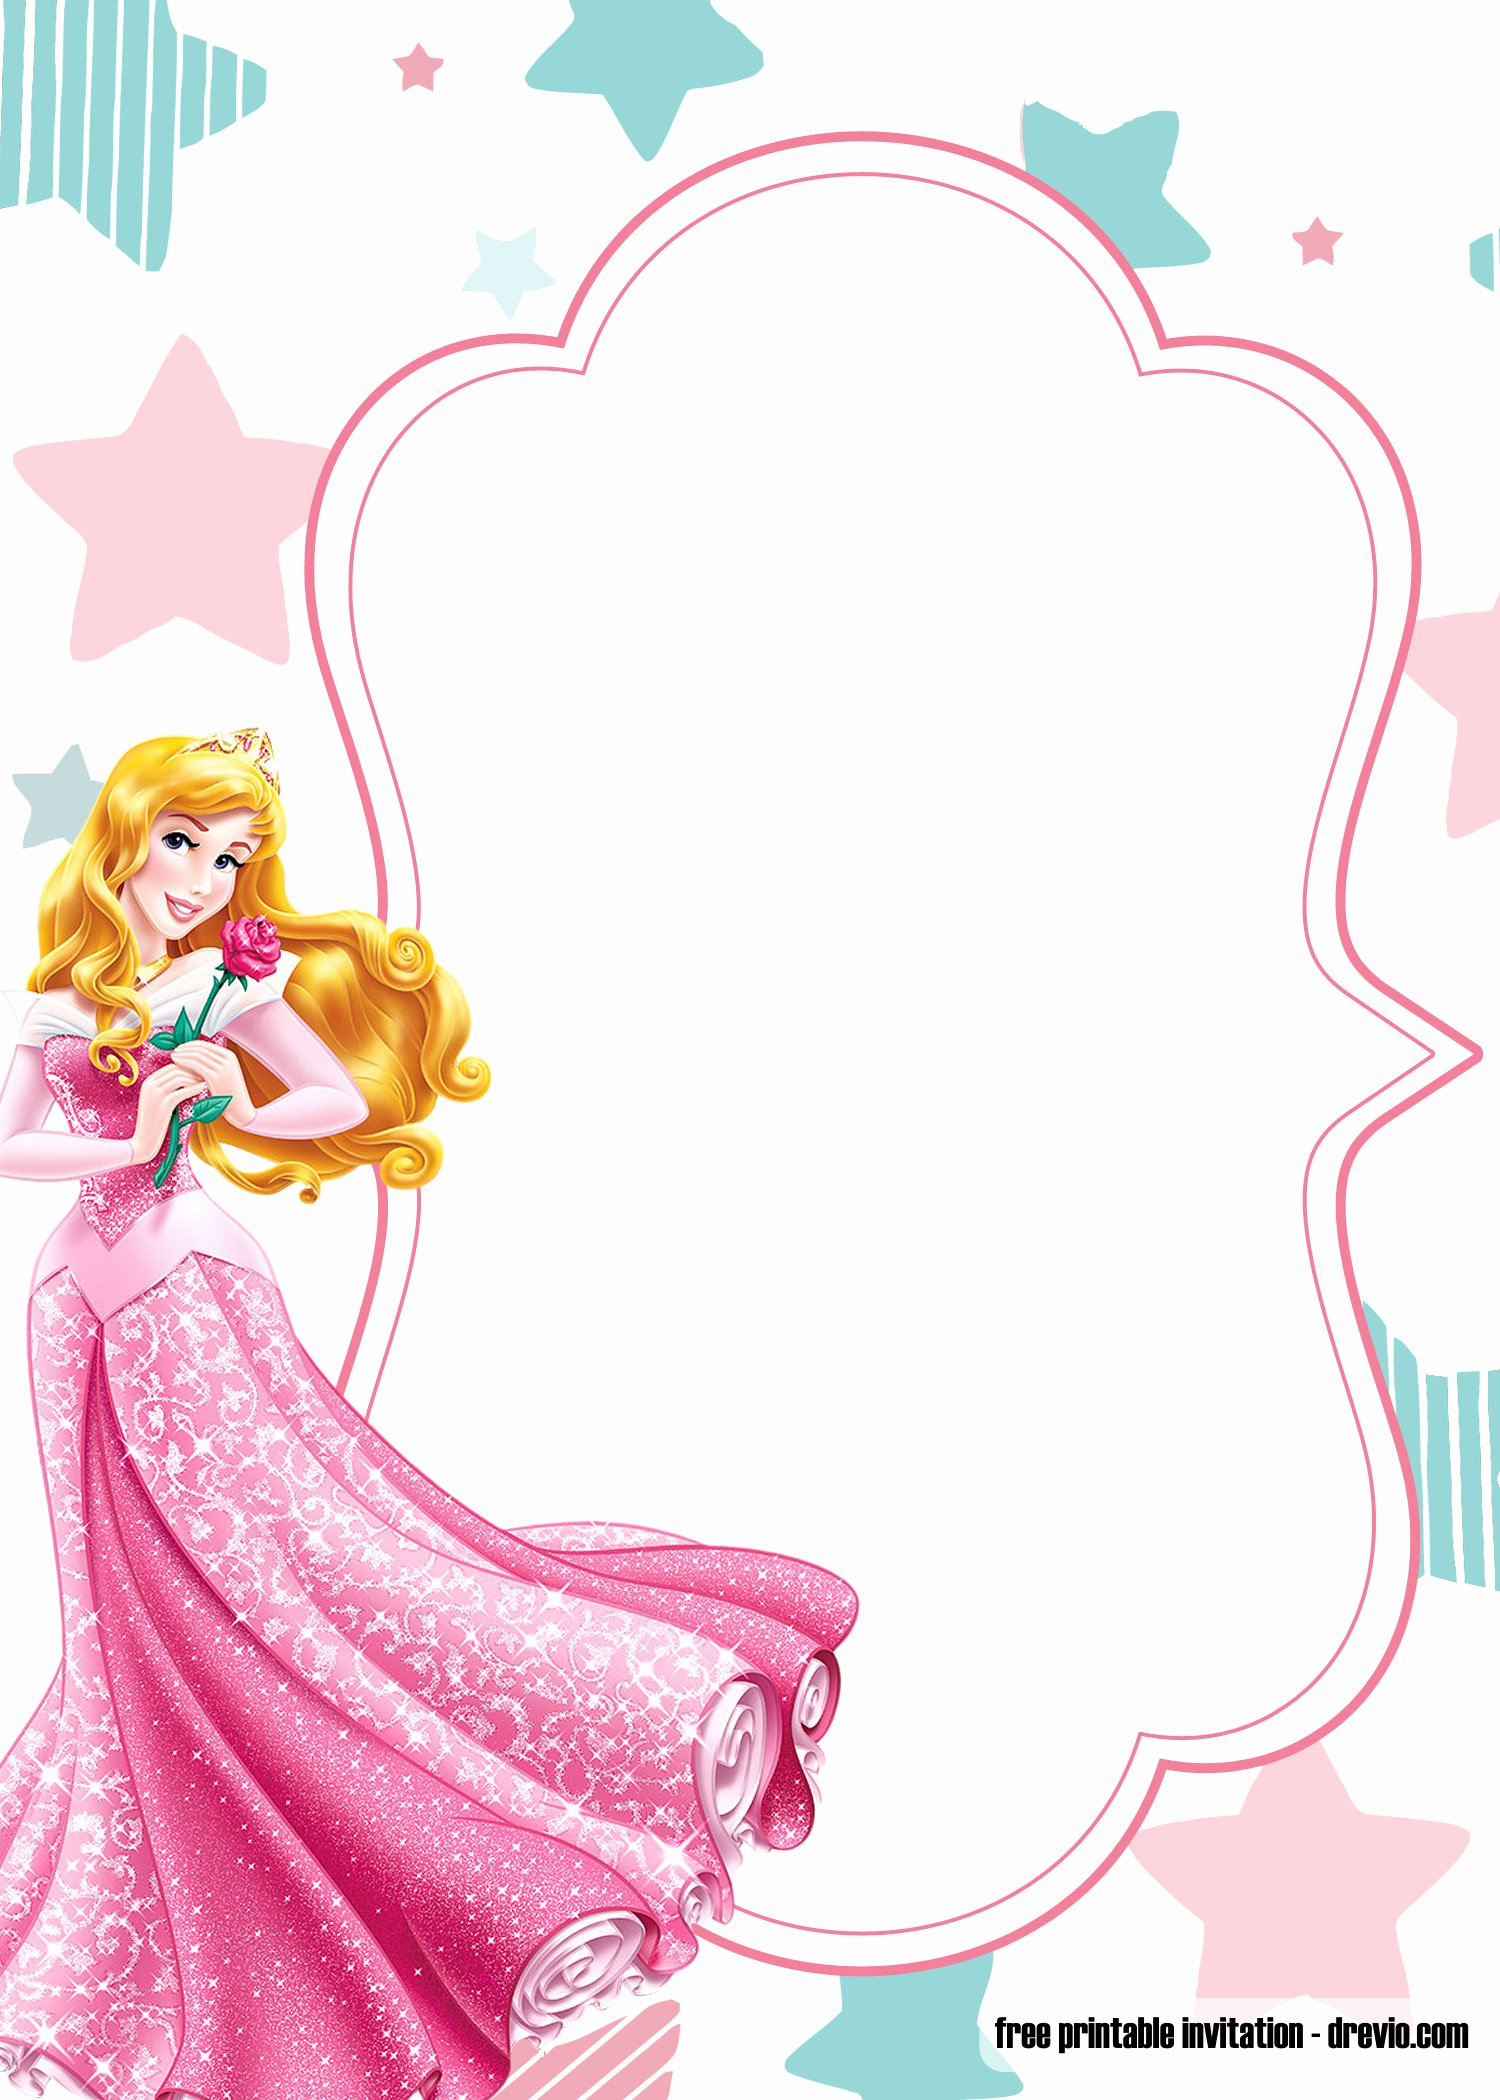 Disney Princess Invitation Template Fresh Free Printable Princess Birthday Invitation Templates Barbie and Disney Princesses Free